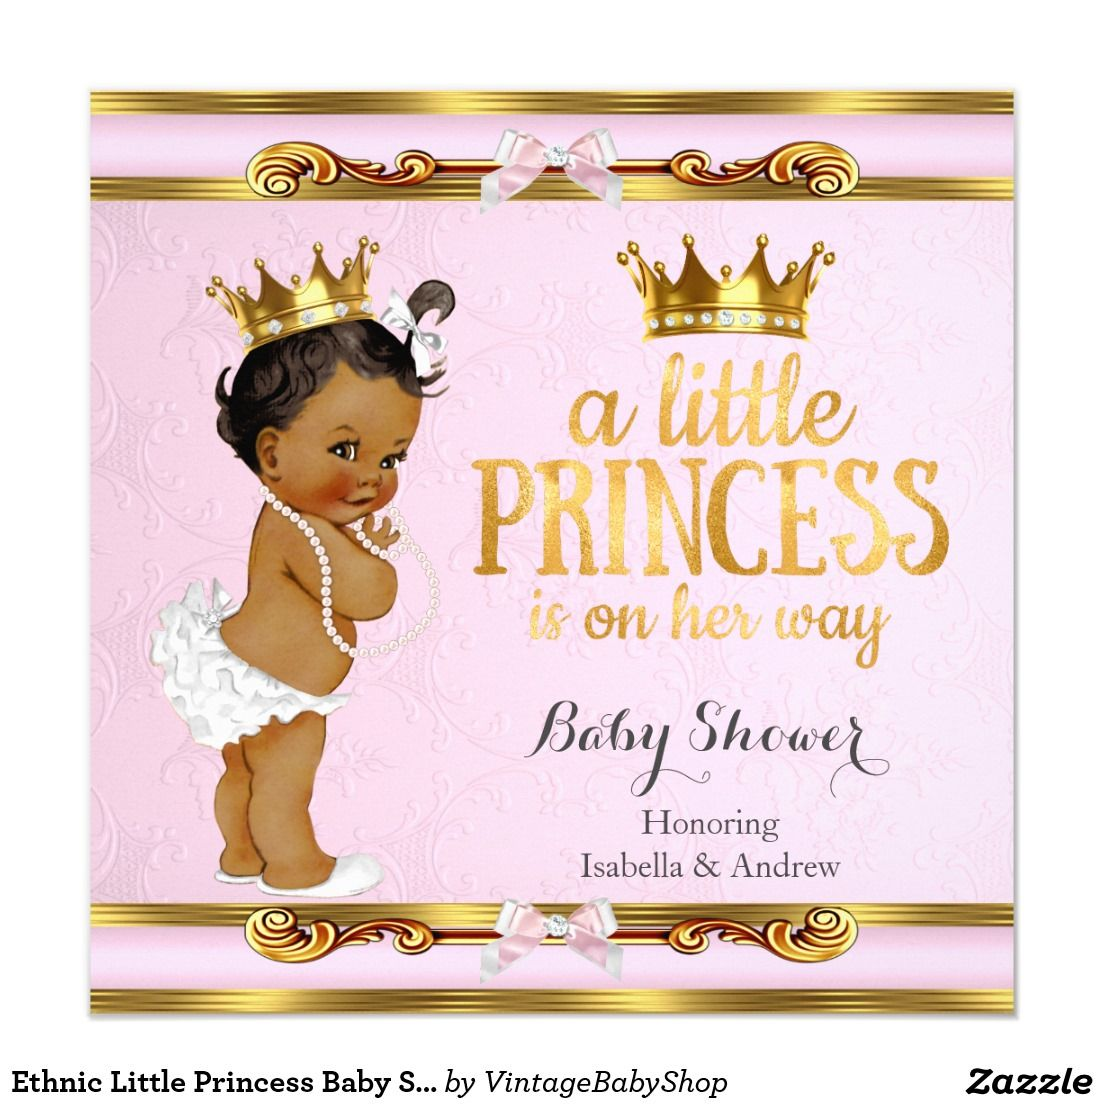 Ethnic Little Princess Baby Shower Pink Gold Card   Gold invitations ...